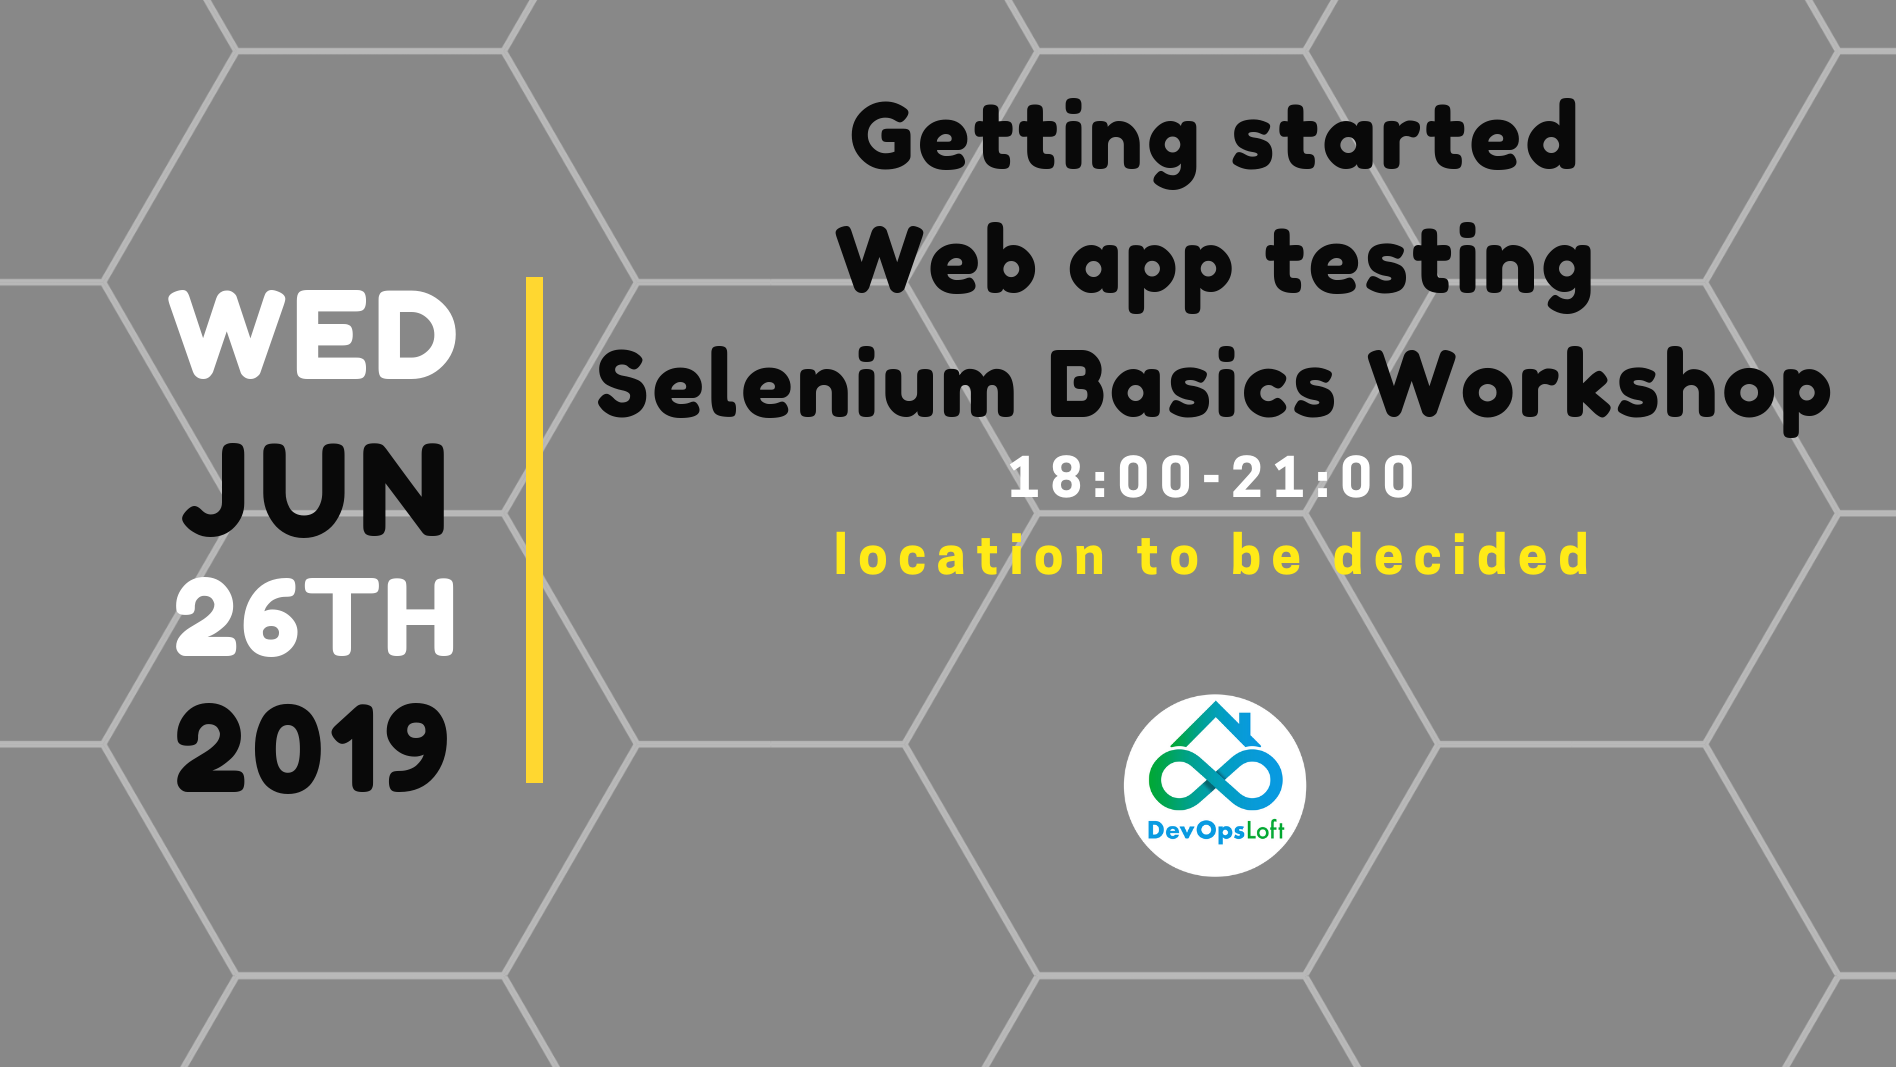 Getting started Web app testing - Selenium Basics Workshop